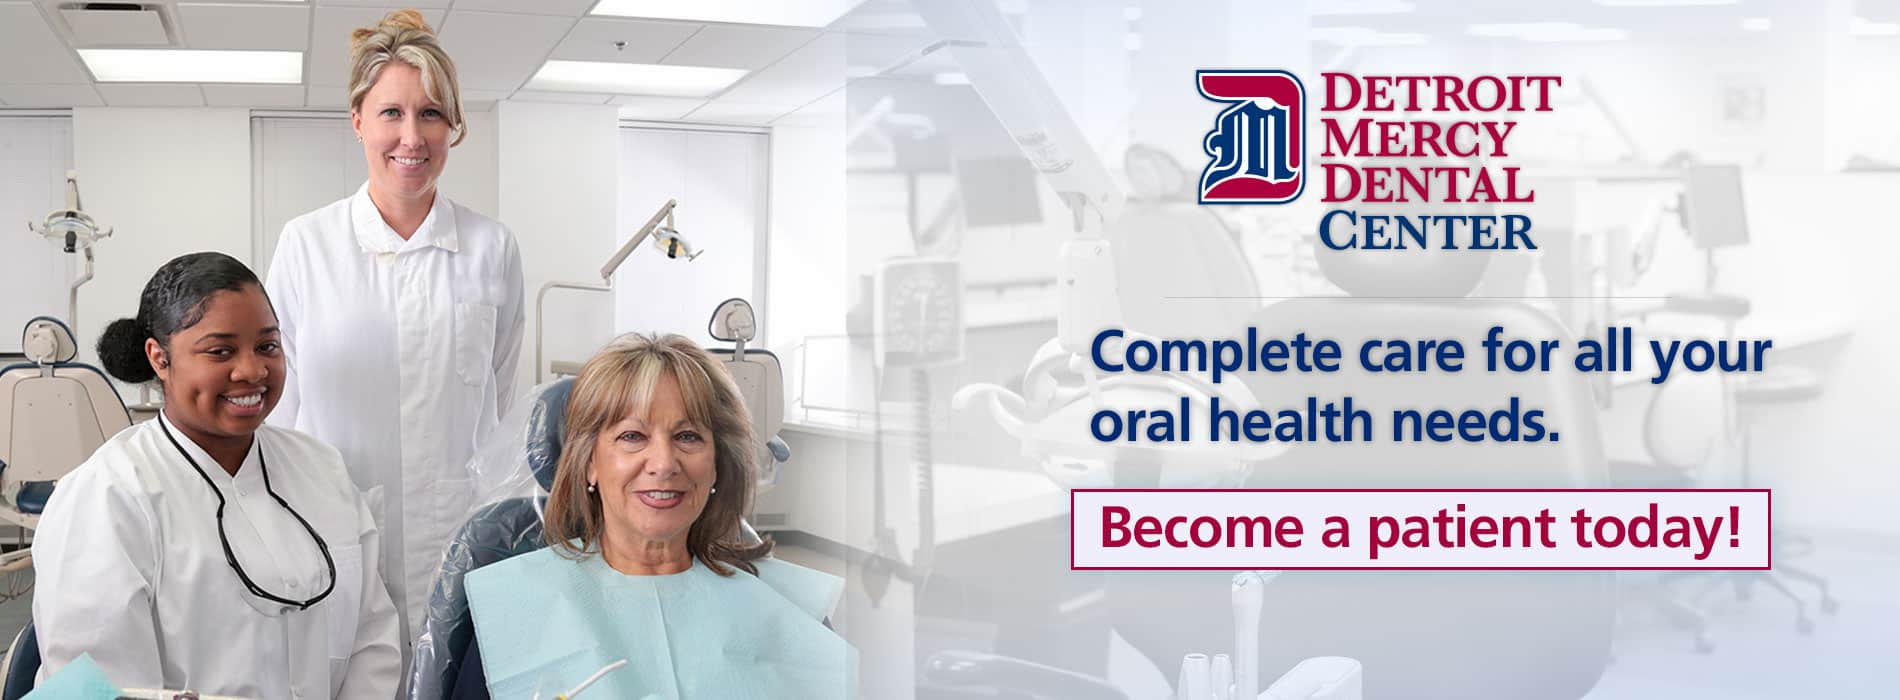 School of Dentistry | University of Detroit Mercy